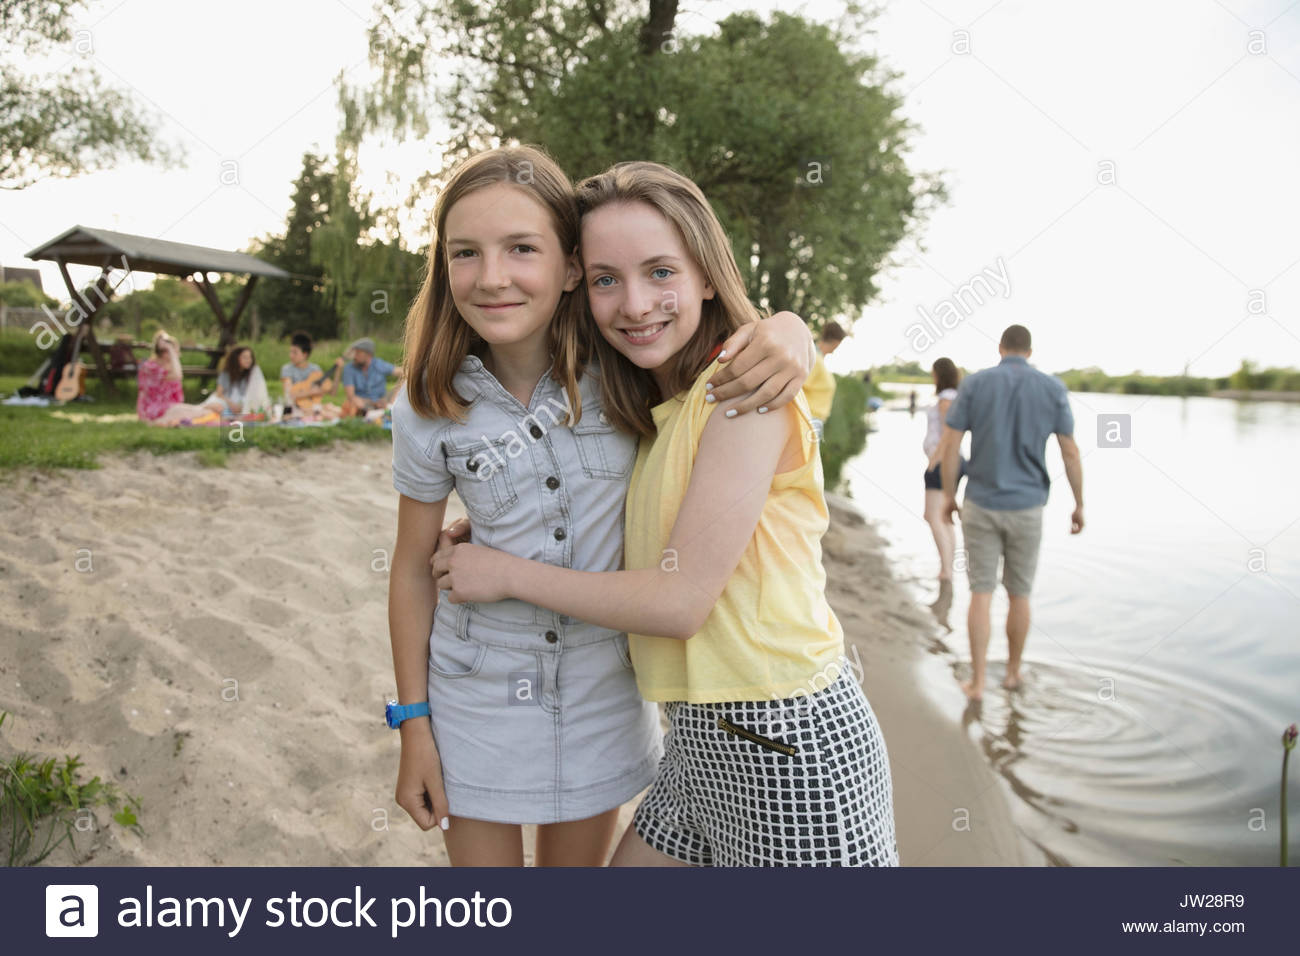 Pré-adolescents Portrait smiling sisters hugging on été plage au bord du lac Photo Stock